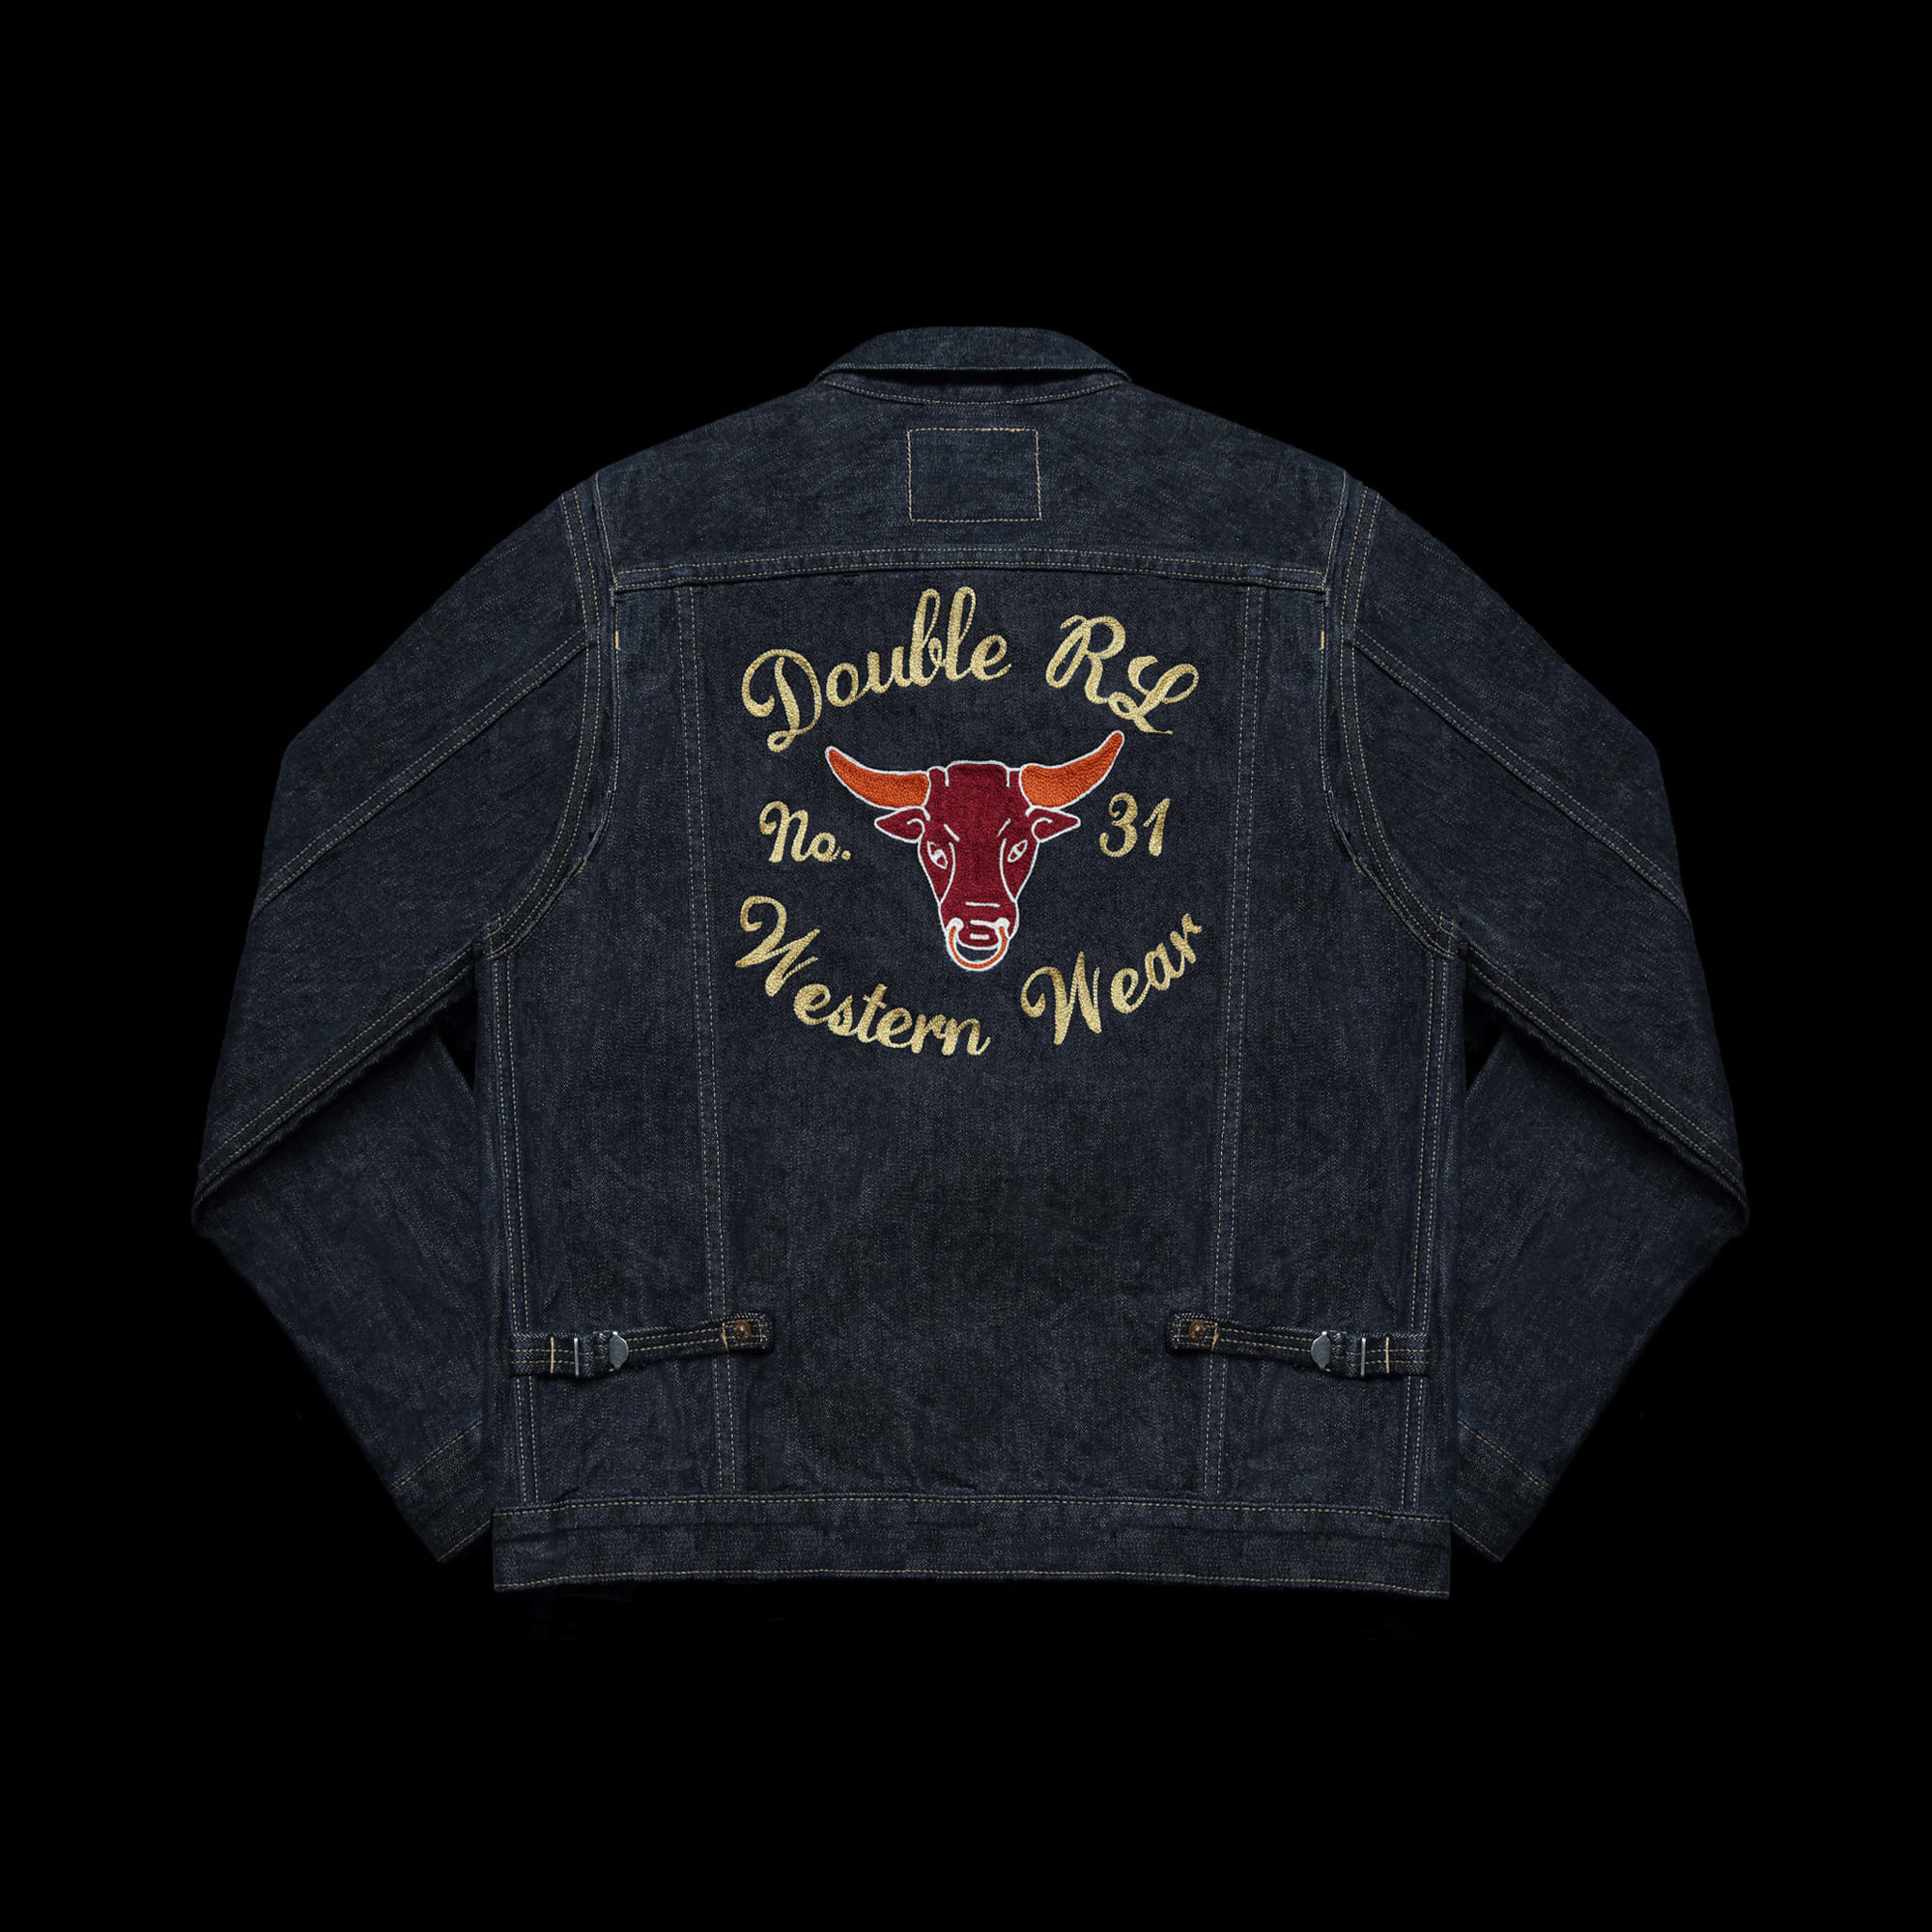 RRLLIMITED EDITIONSELVEDGE MJ11DENIM JACKET